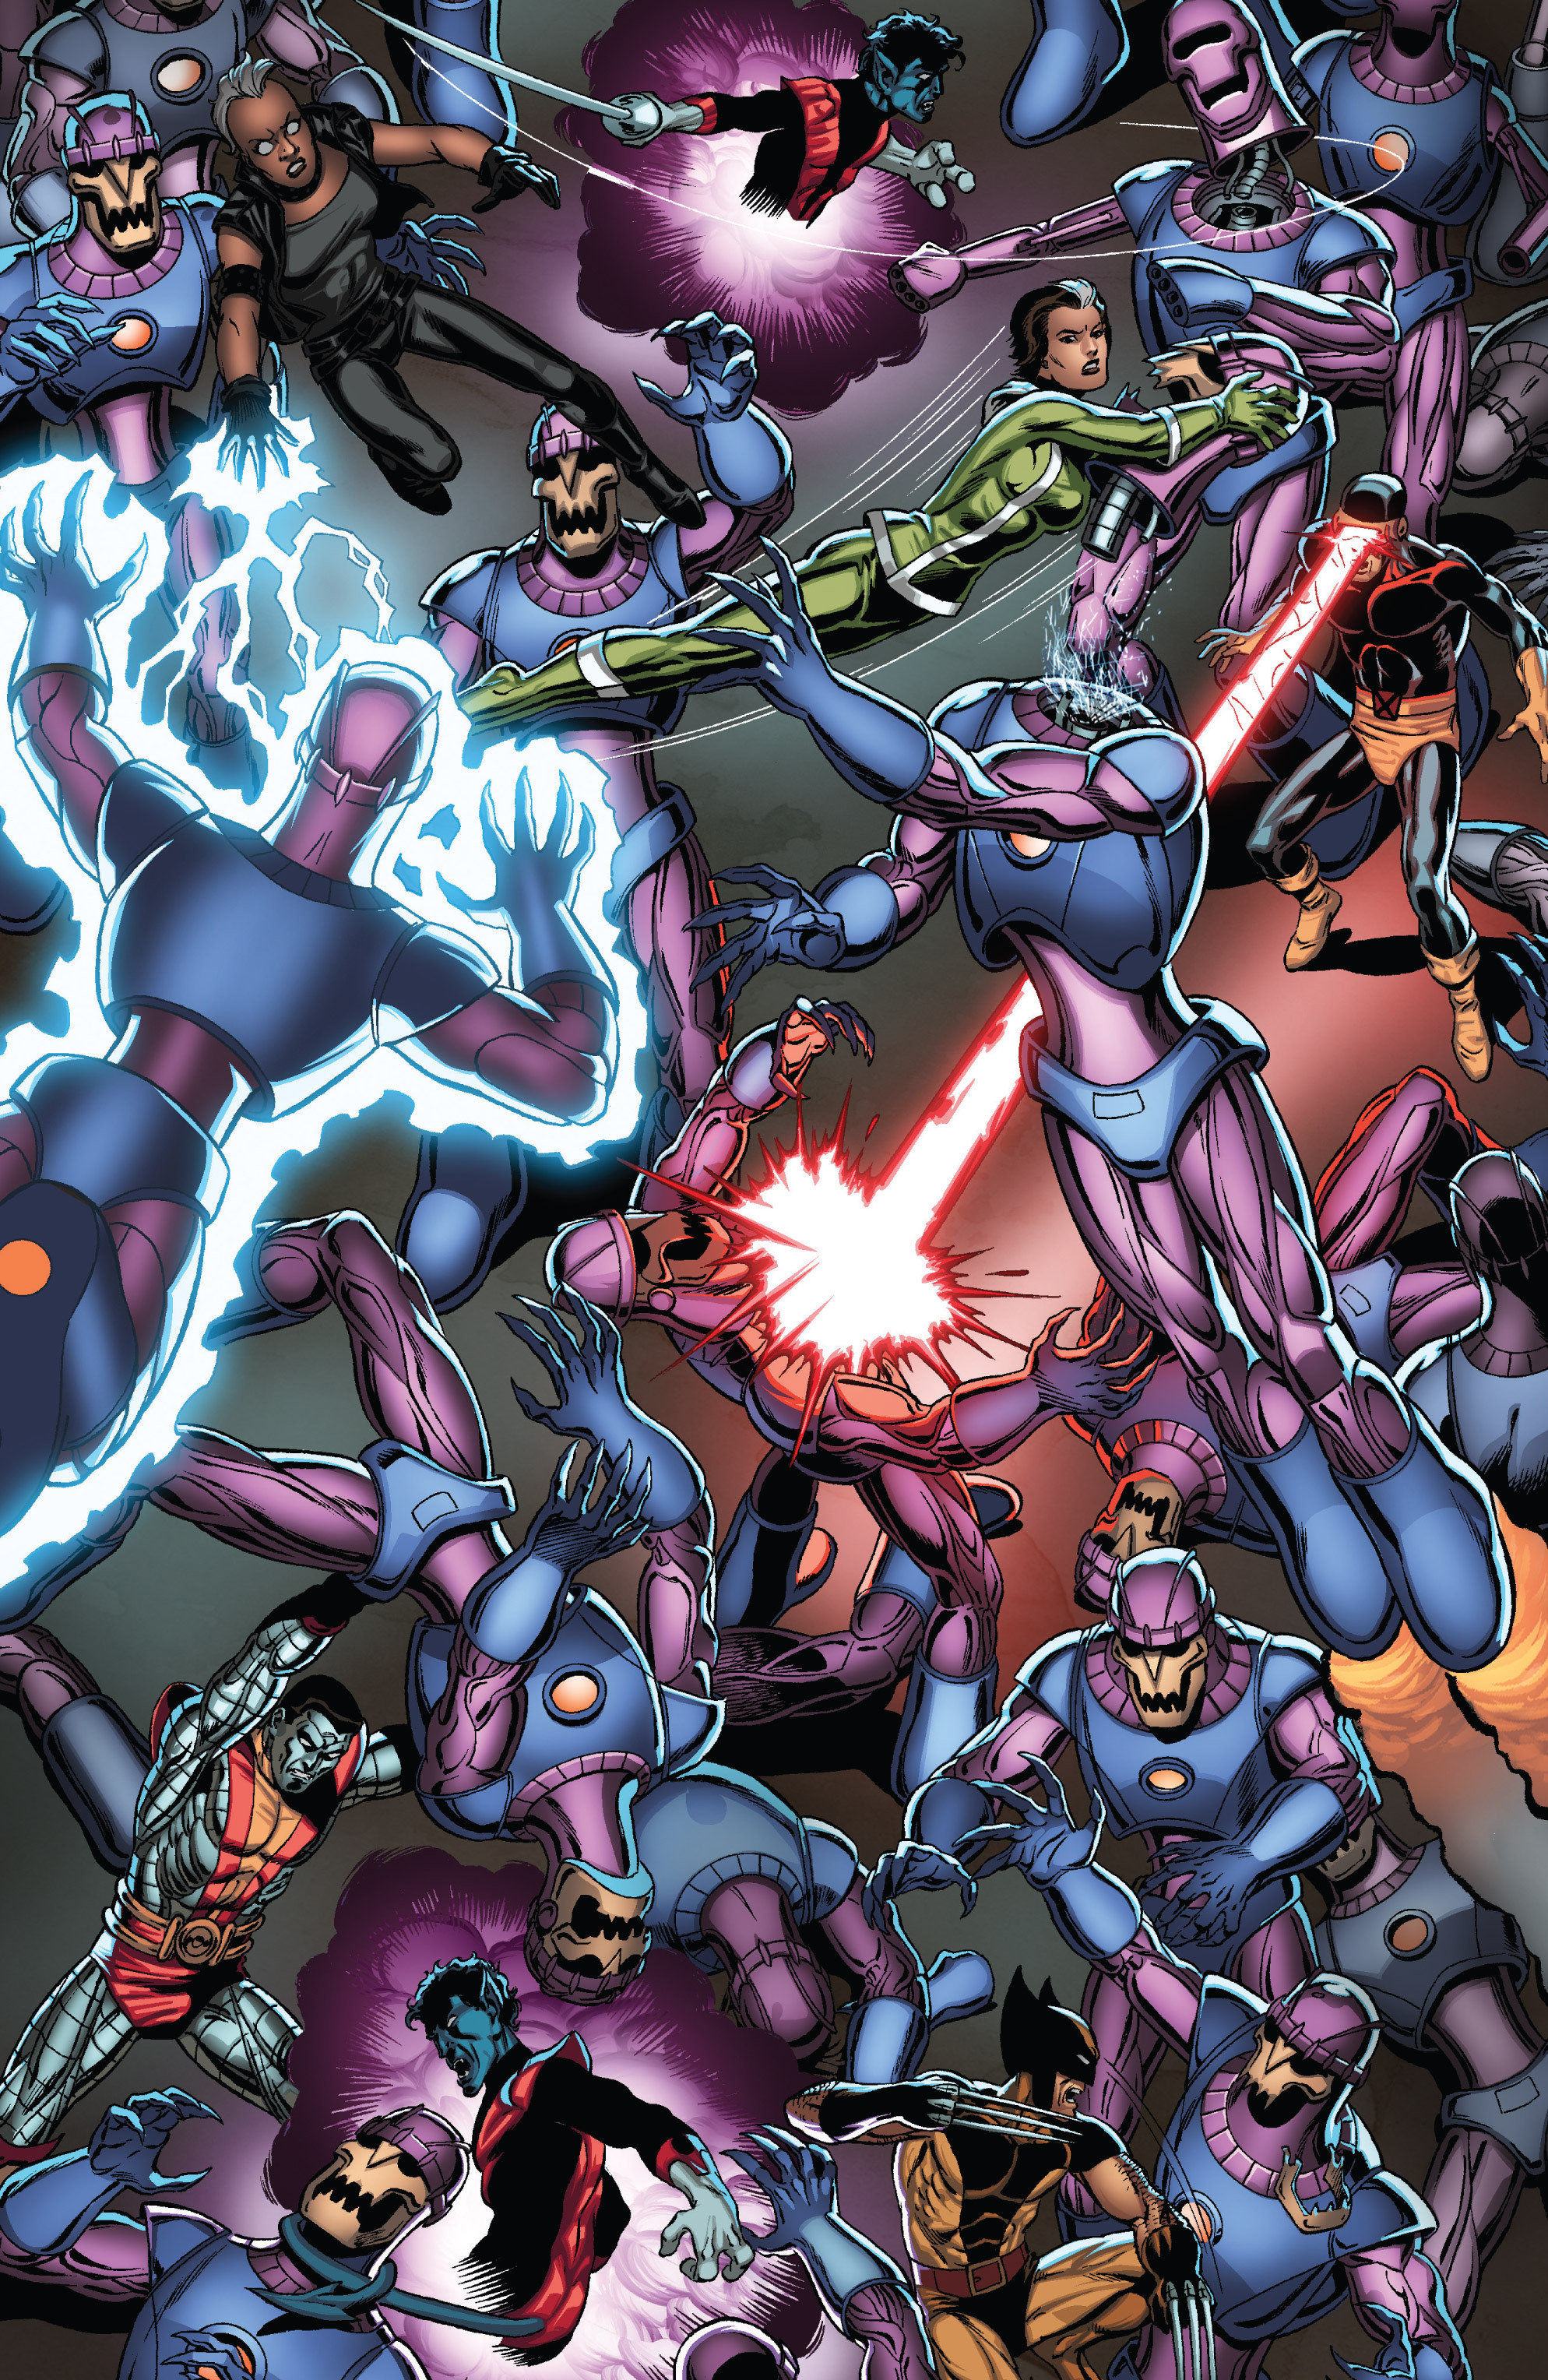 Read online All-New X-Men (2013) comic -  Issue # _Special - All-Different - 90